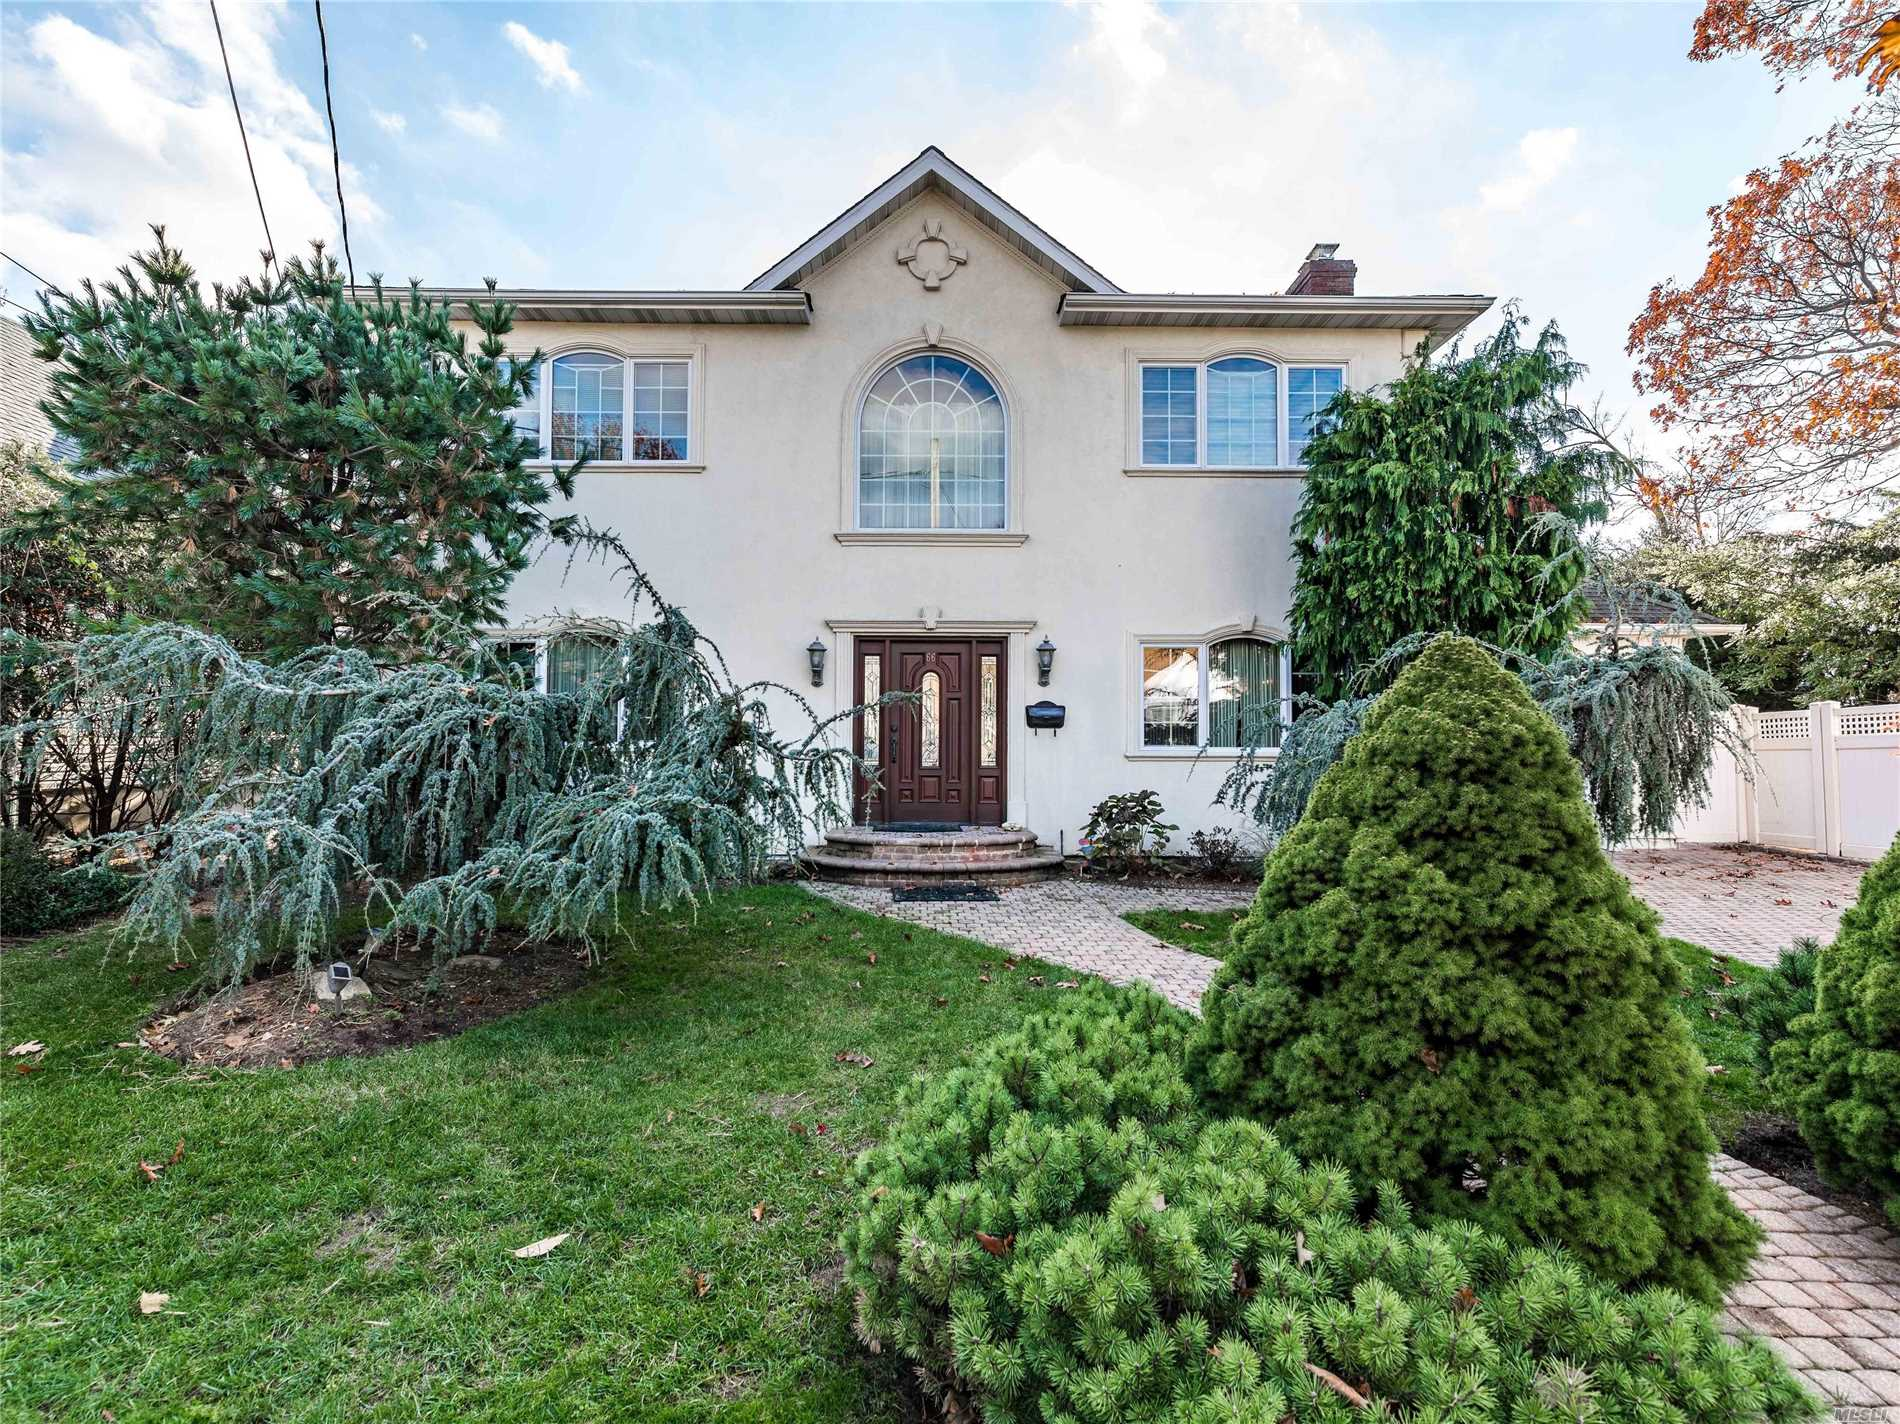 Central Colonial Renovated And Rebuild In 2011 Features 4 Bedroom, 3 Bath, Eik With Ss Appliances And Granite Countertop, Formal Dr , Lr With Fireplace , Den, Master Suite With Walk In Closet, Cac. Almost 3000 Sq.Feet Located On Beautiful Tree Lined Street. Beautiful Yard With Patio , 80X100 Lot. School District 13.